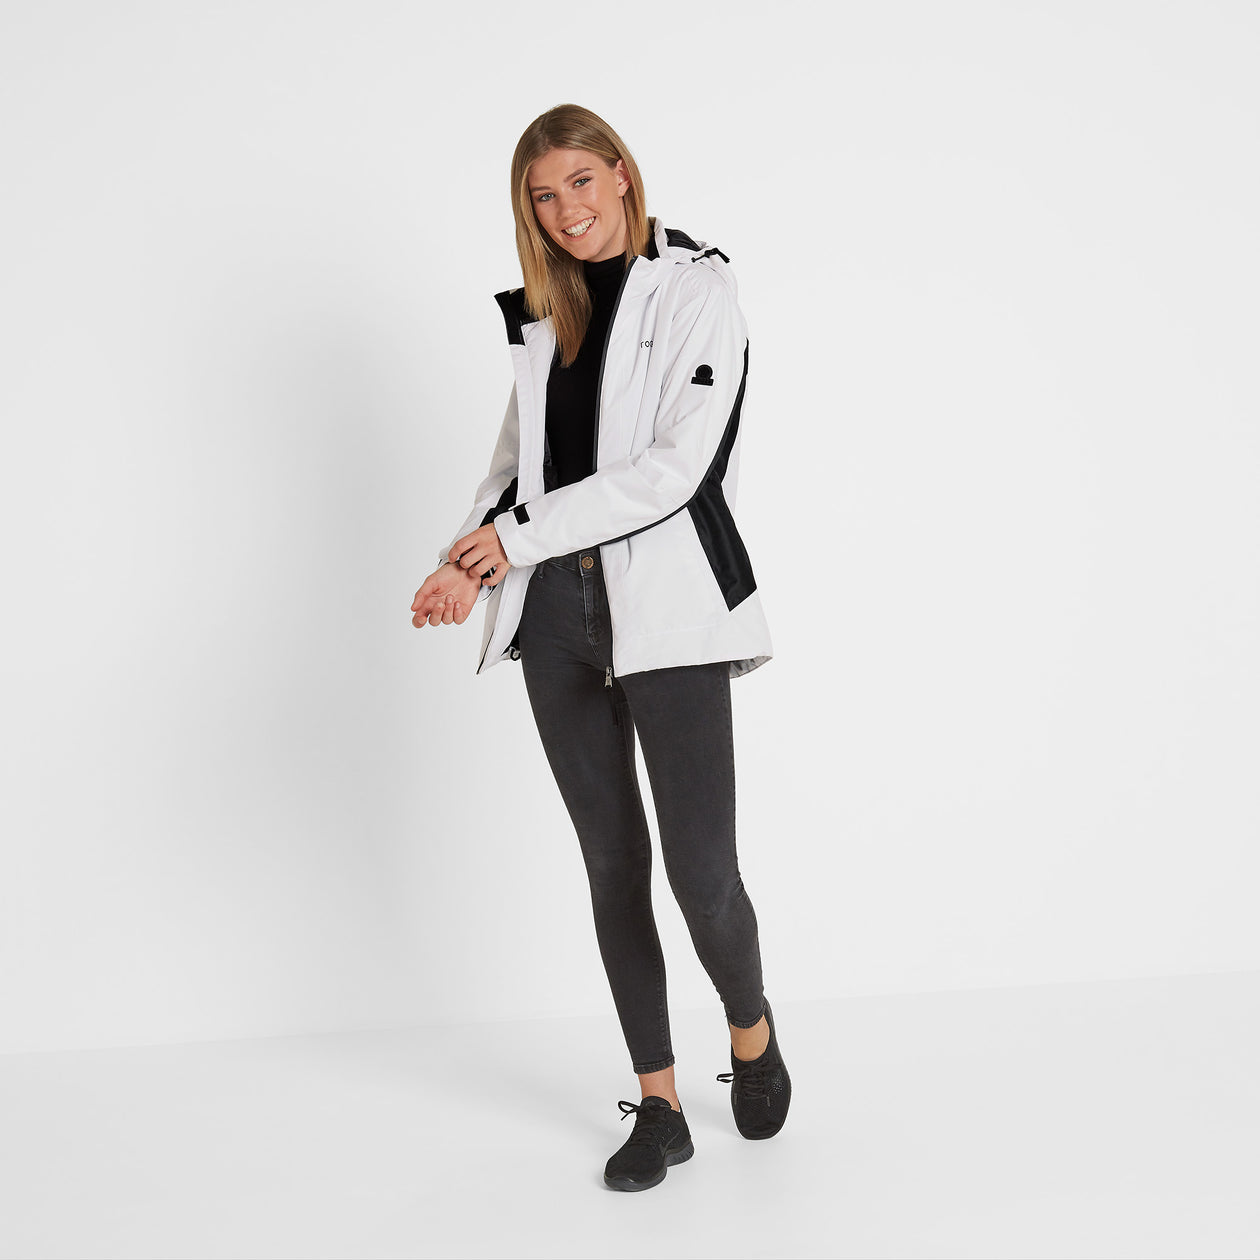 Piper Womens Winter Jacket - White/Black image 4